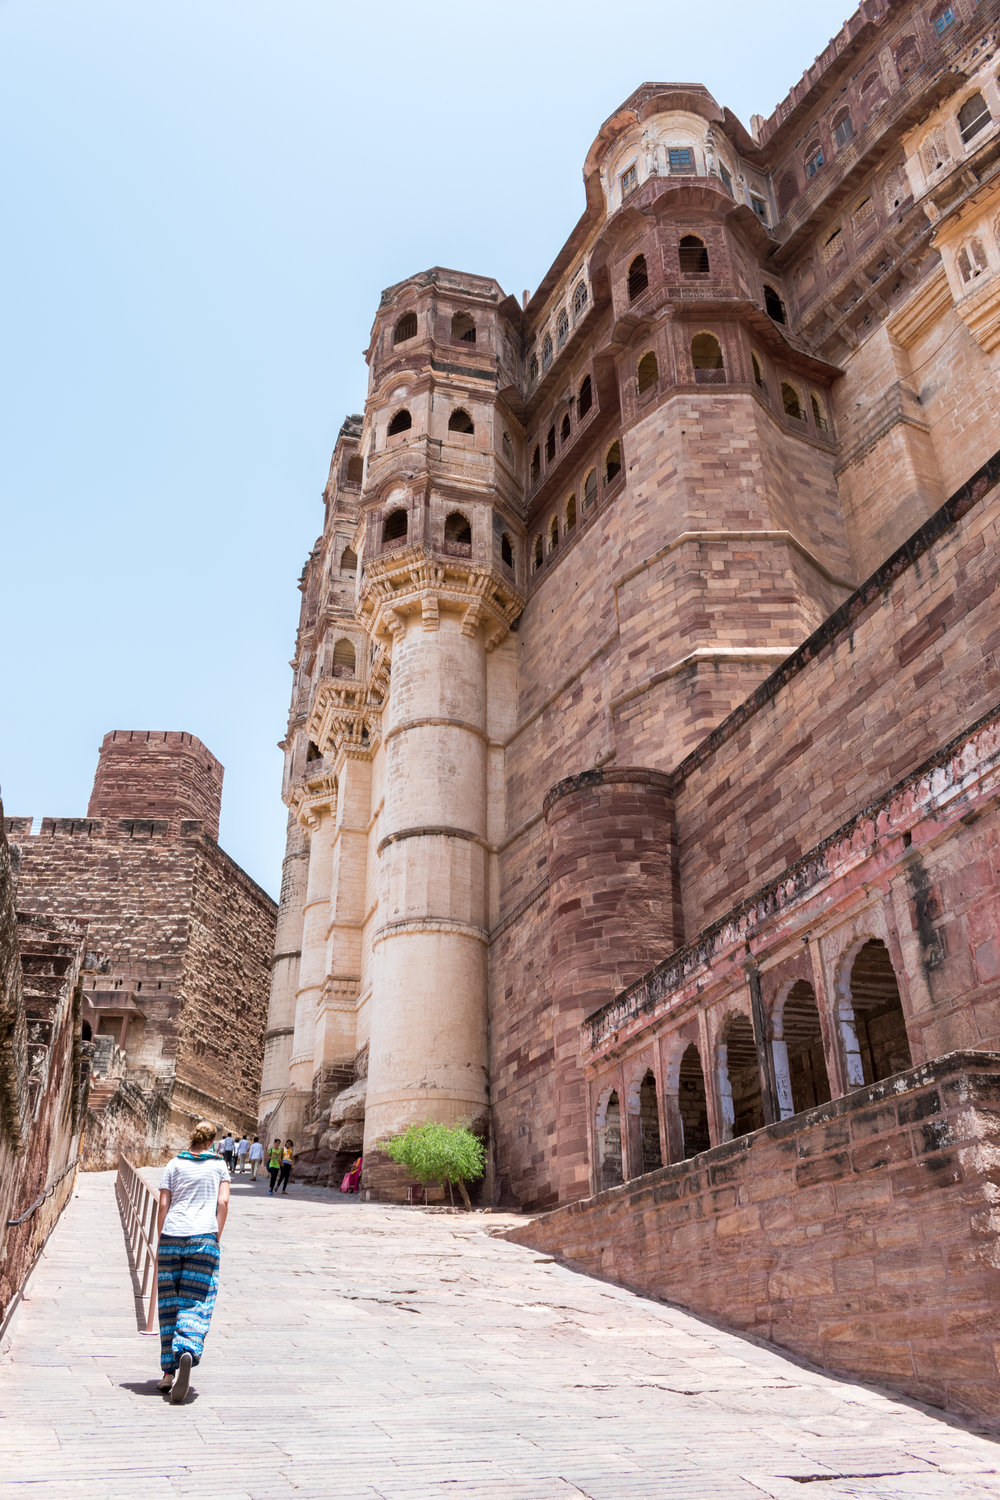 Walking The Steep Slope Of Mehrangarh Fort in Jodhpur, India